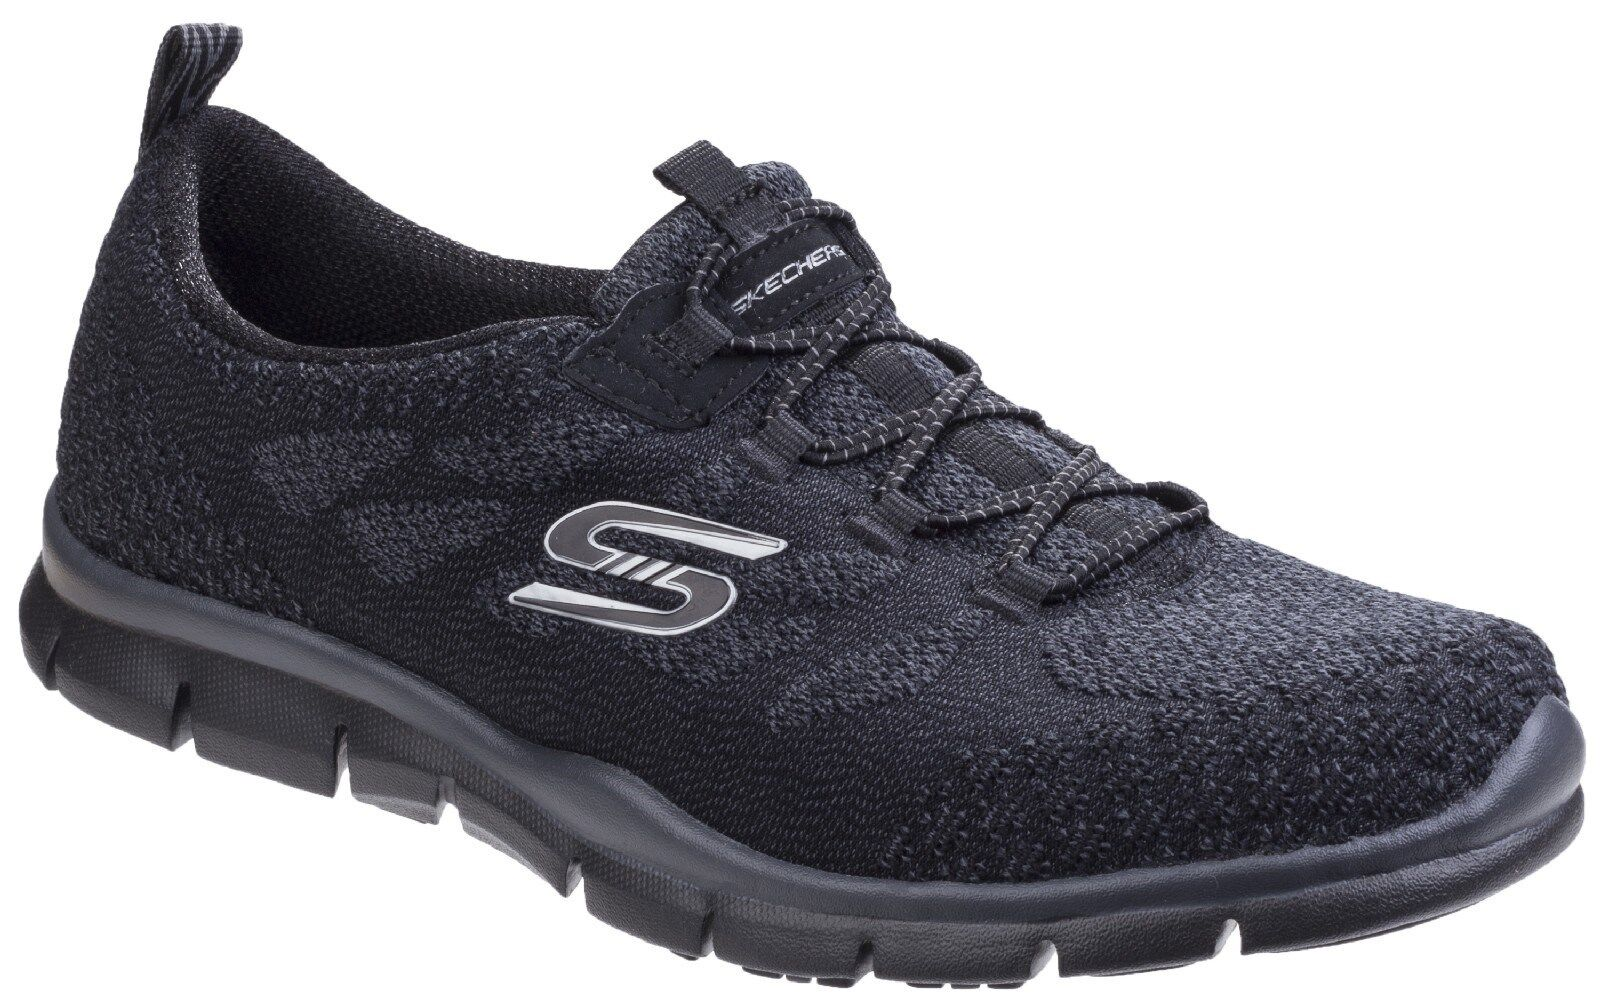 Skechers Gratis Sleek And Chic Trainers Memory Foam Slip On